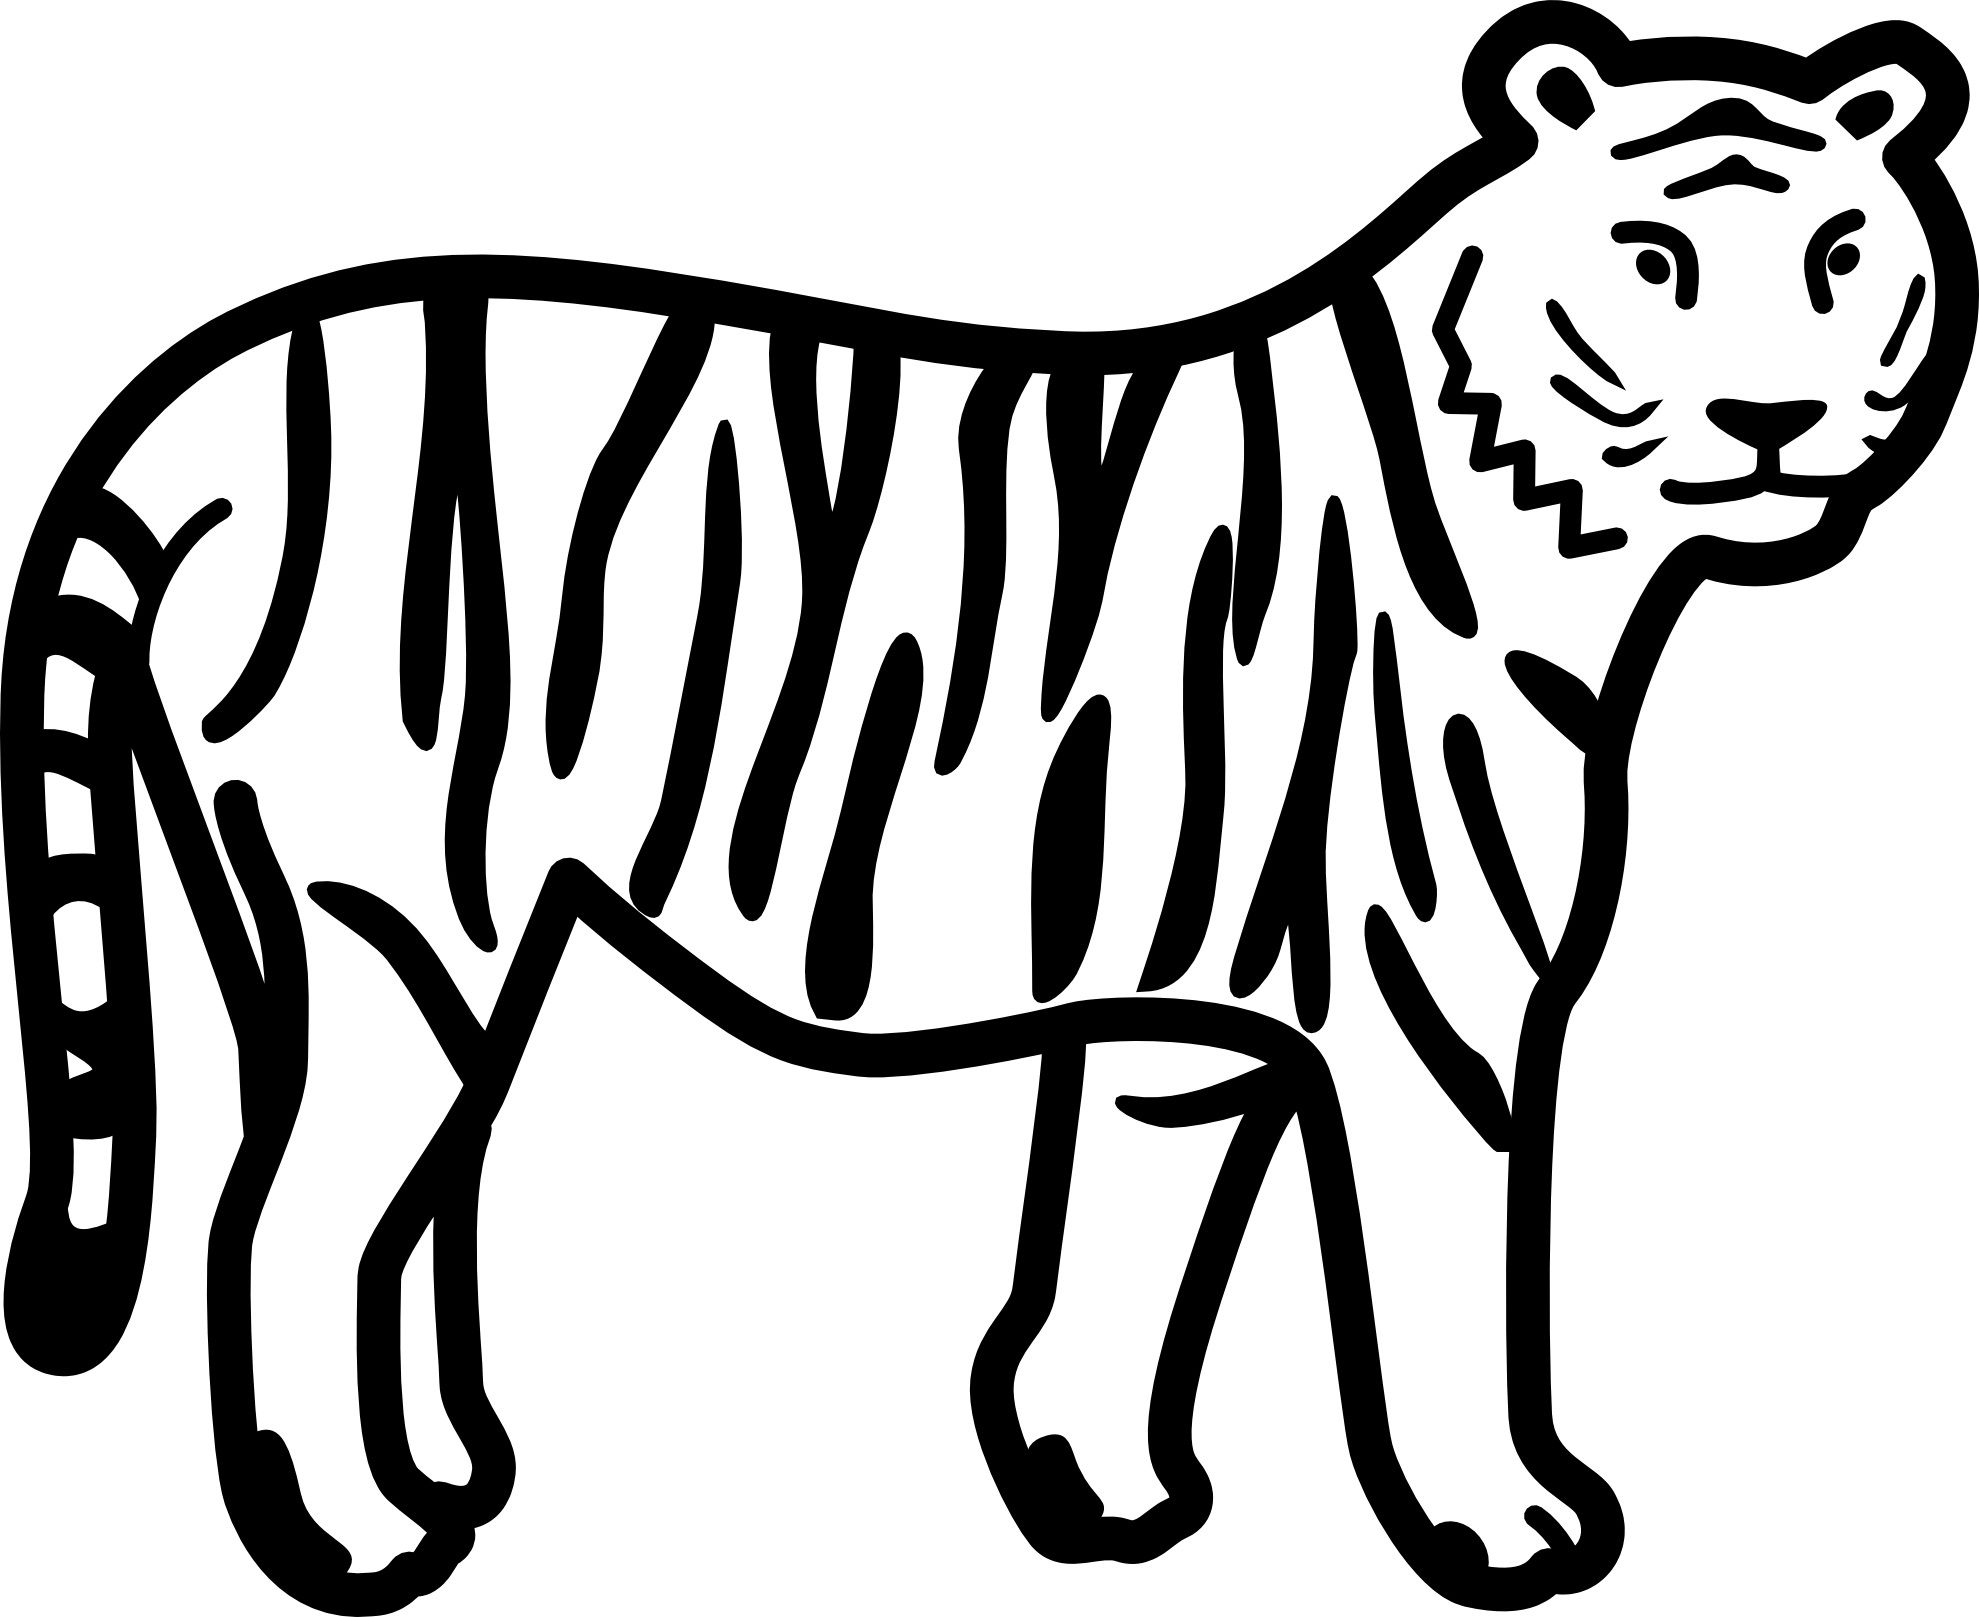 Tigers Coloring Pages Jpg 1 979 1 617 Pixels Tiger Images Cartoon Tiger Animal Clipart